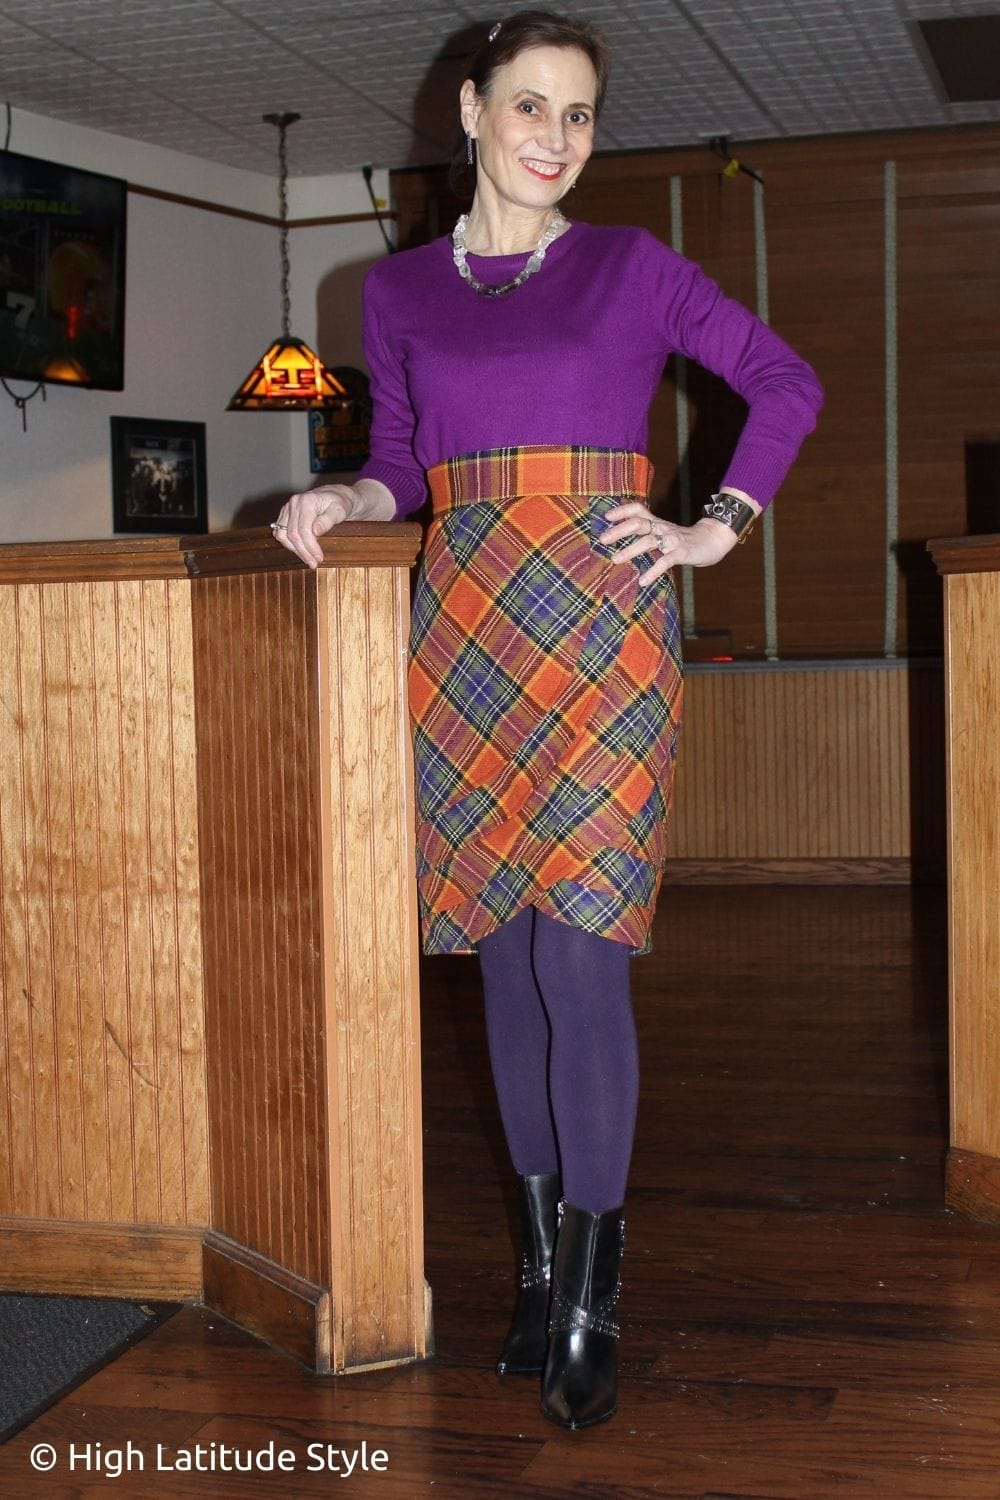 style influencer in orange skirt, purple top and tights